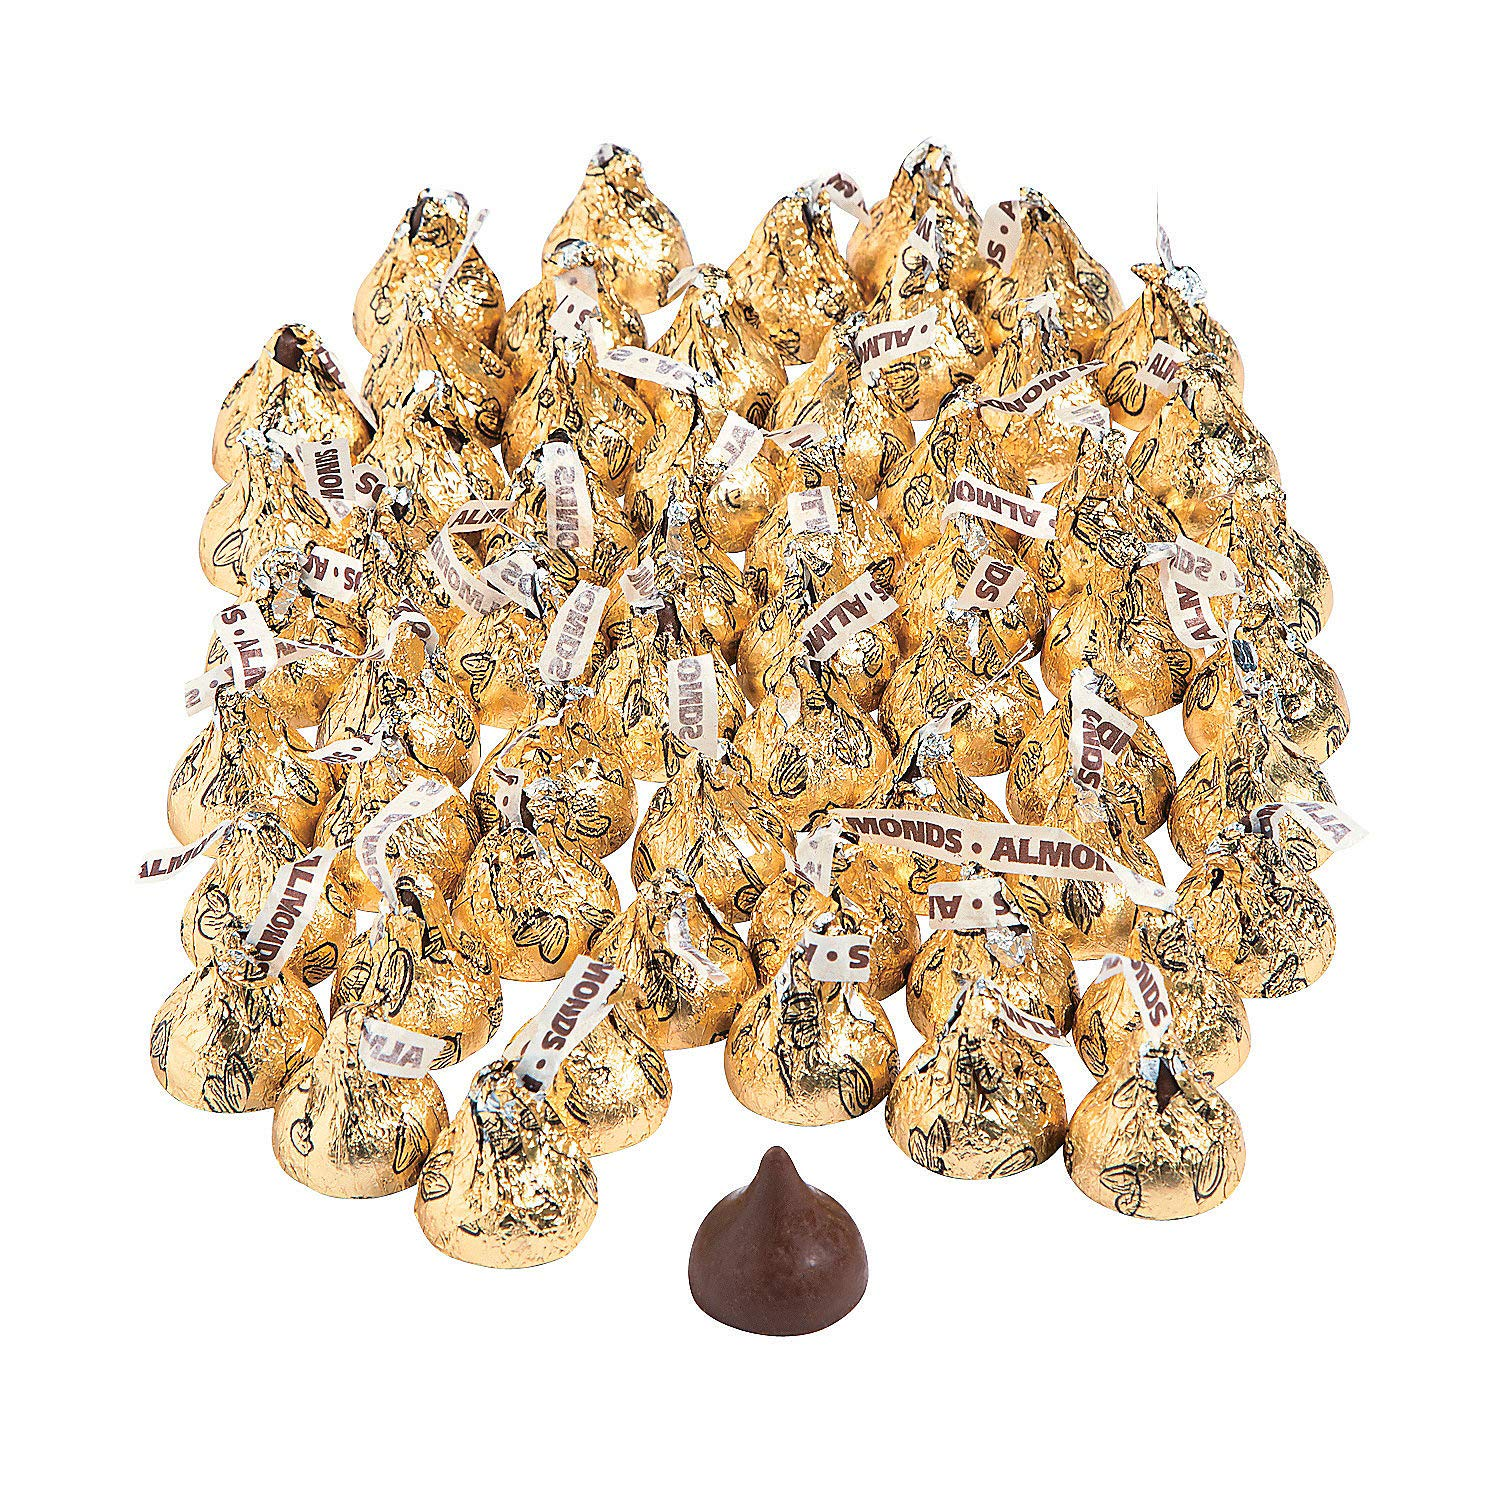 Gold Almond Hershey Kisses (4lb Bulk Pack) 400 Pieces by Fun Express